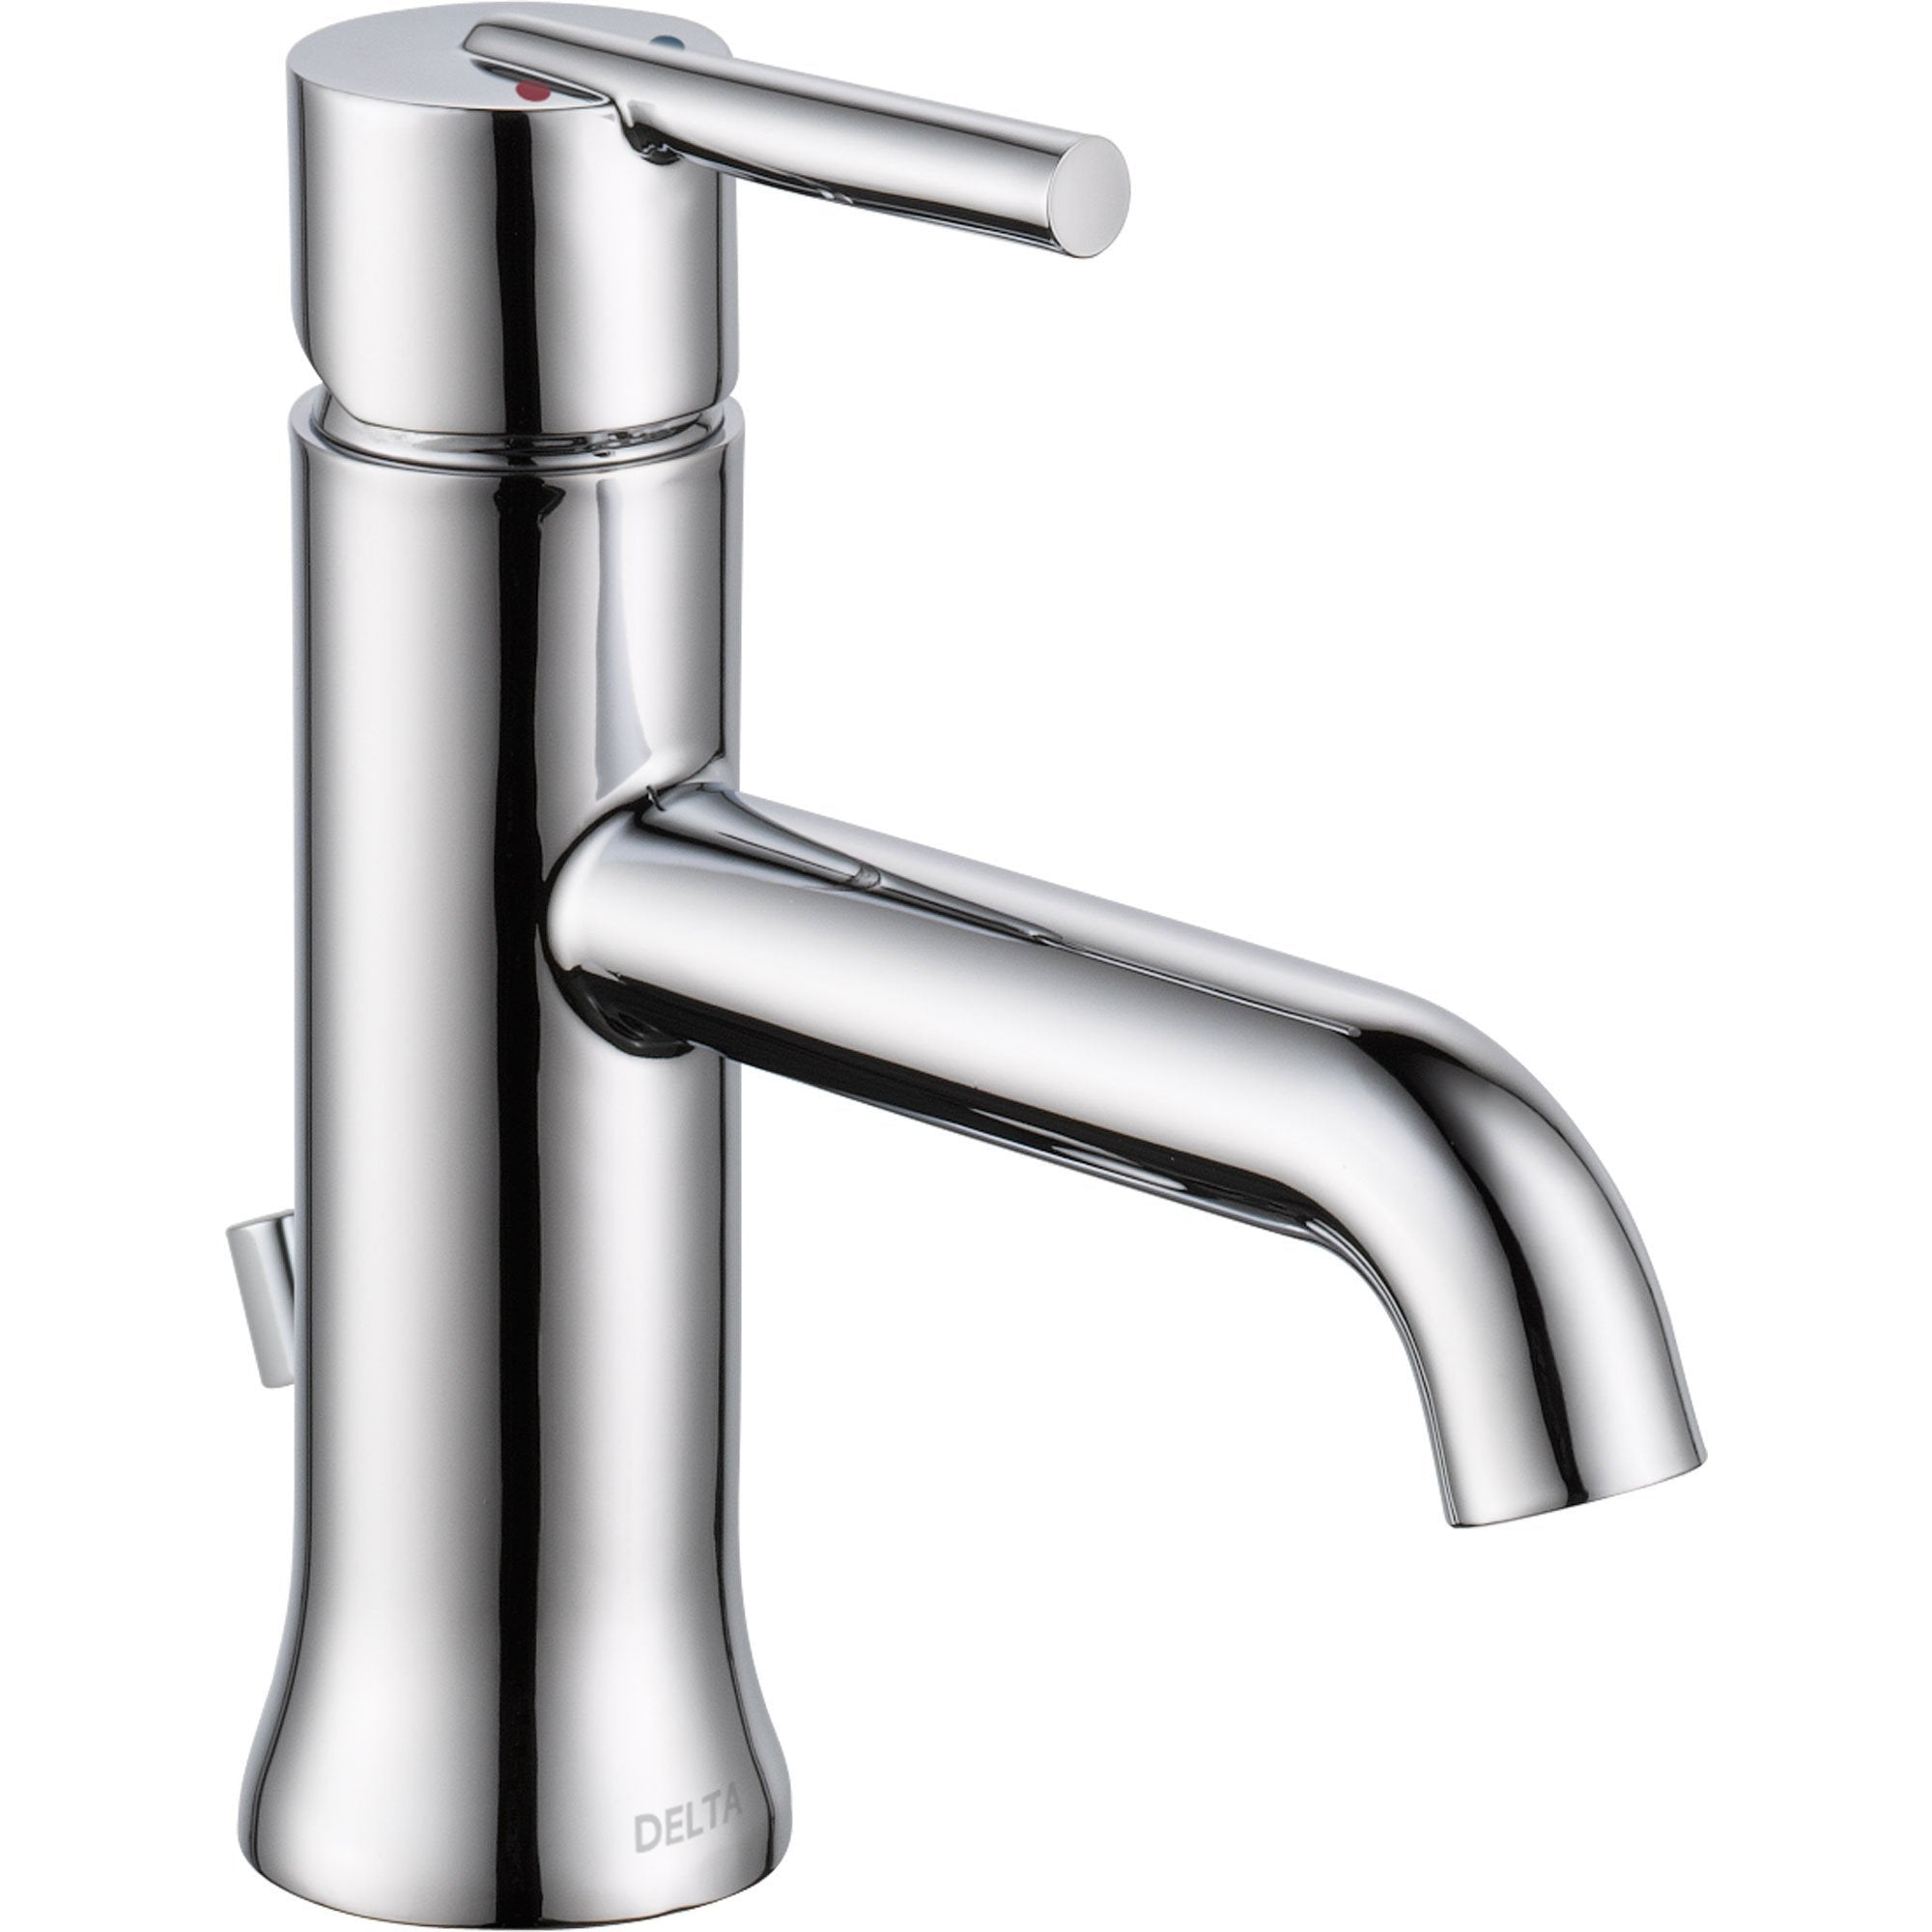 Delta Trinsic Single Hole 1-Handle Chrome Modern Bathroom Faucet 614935